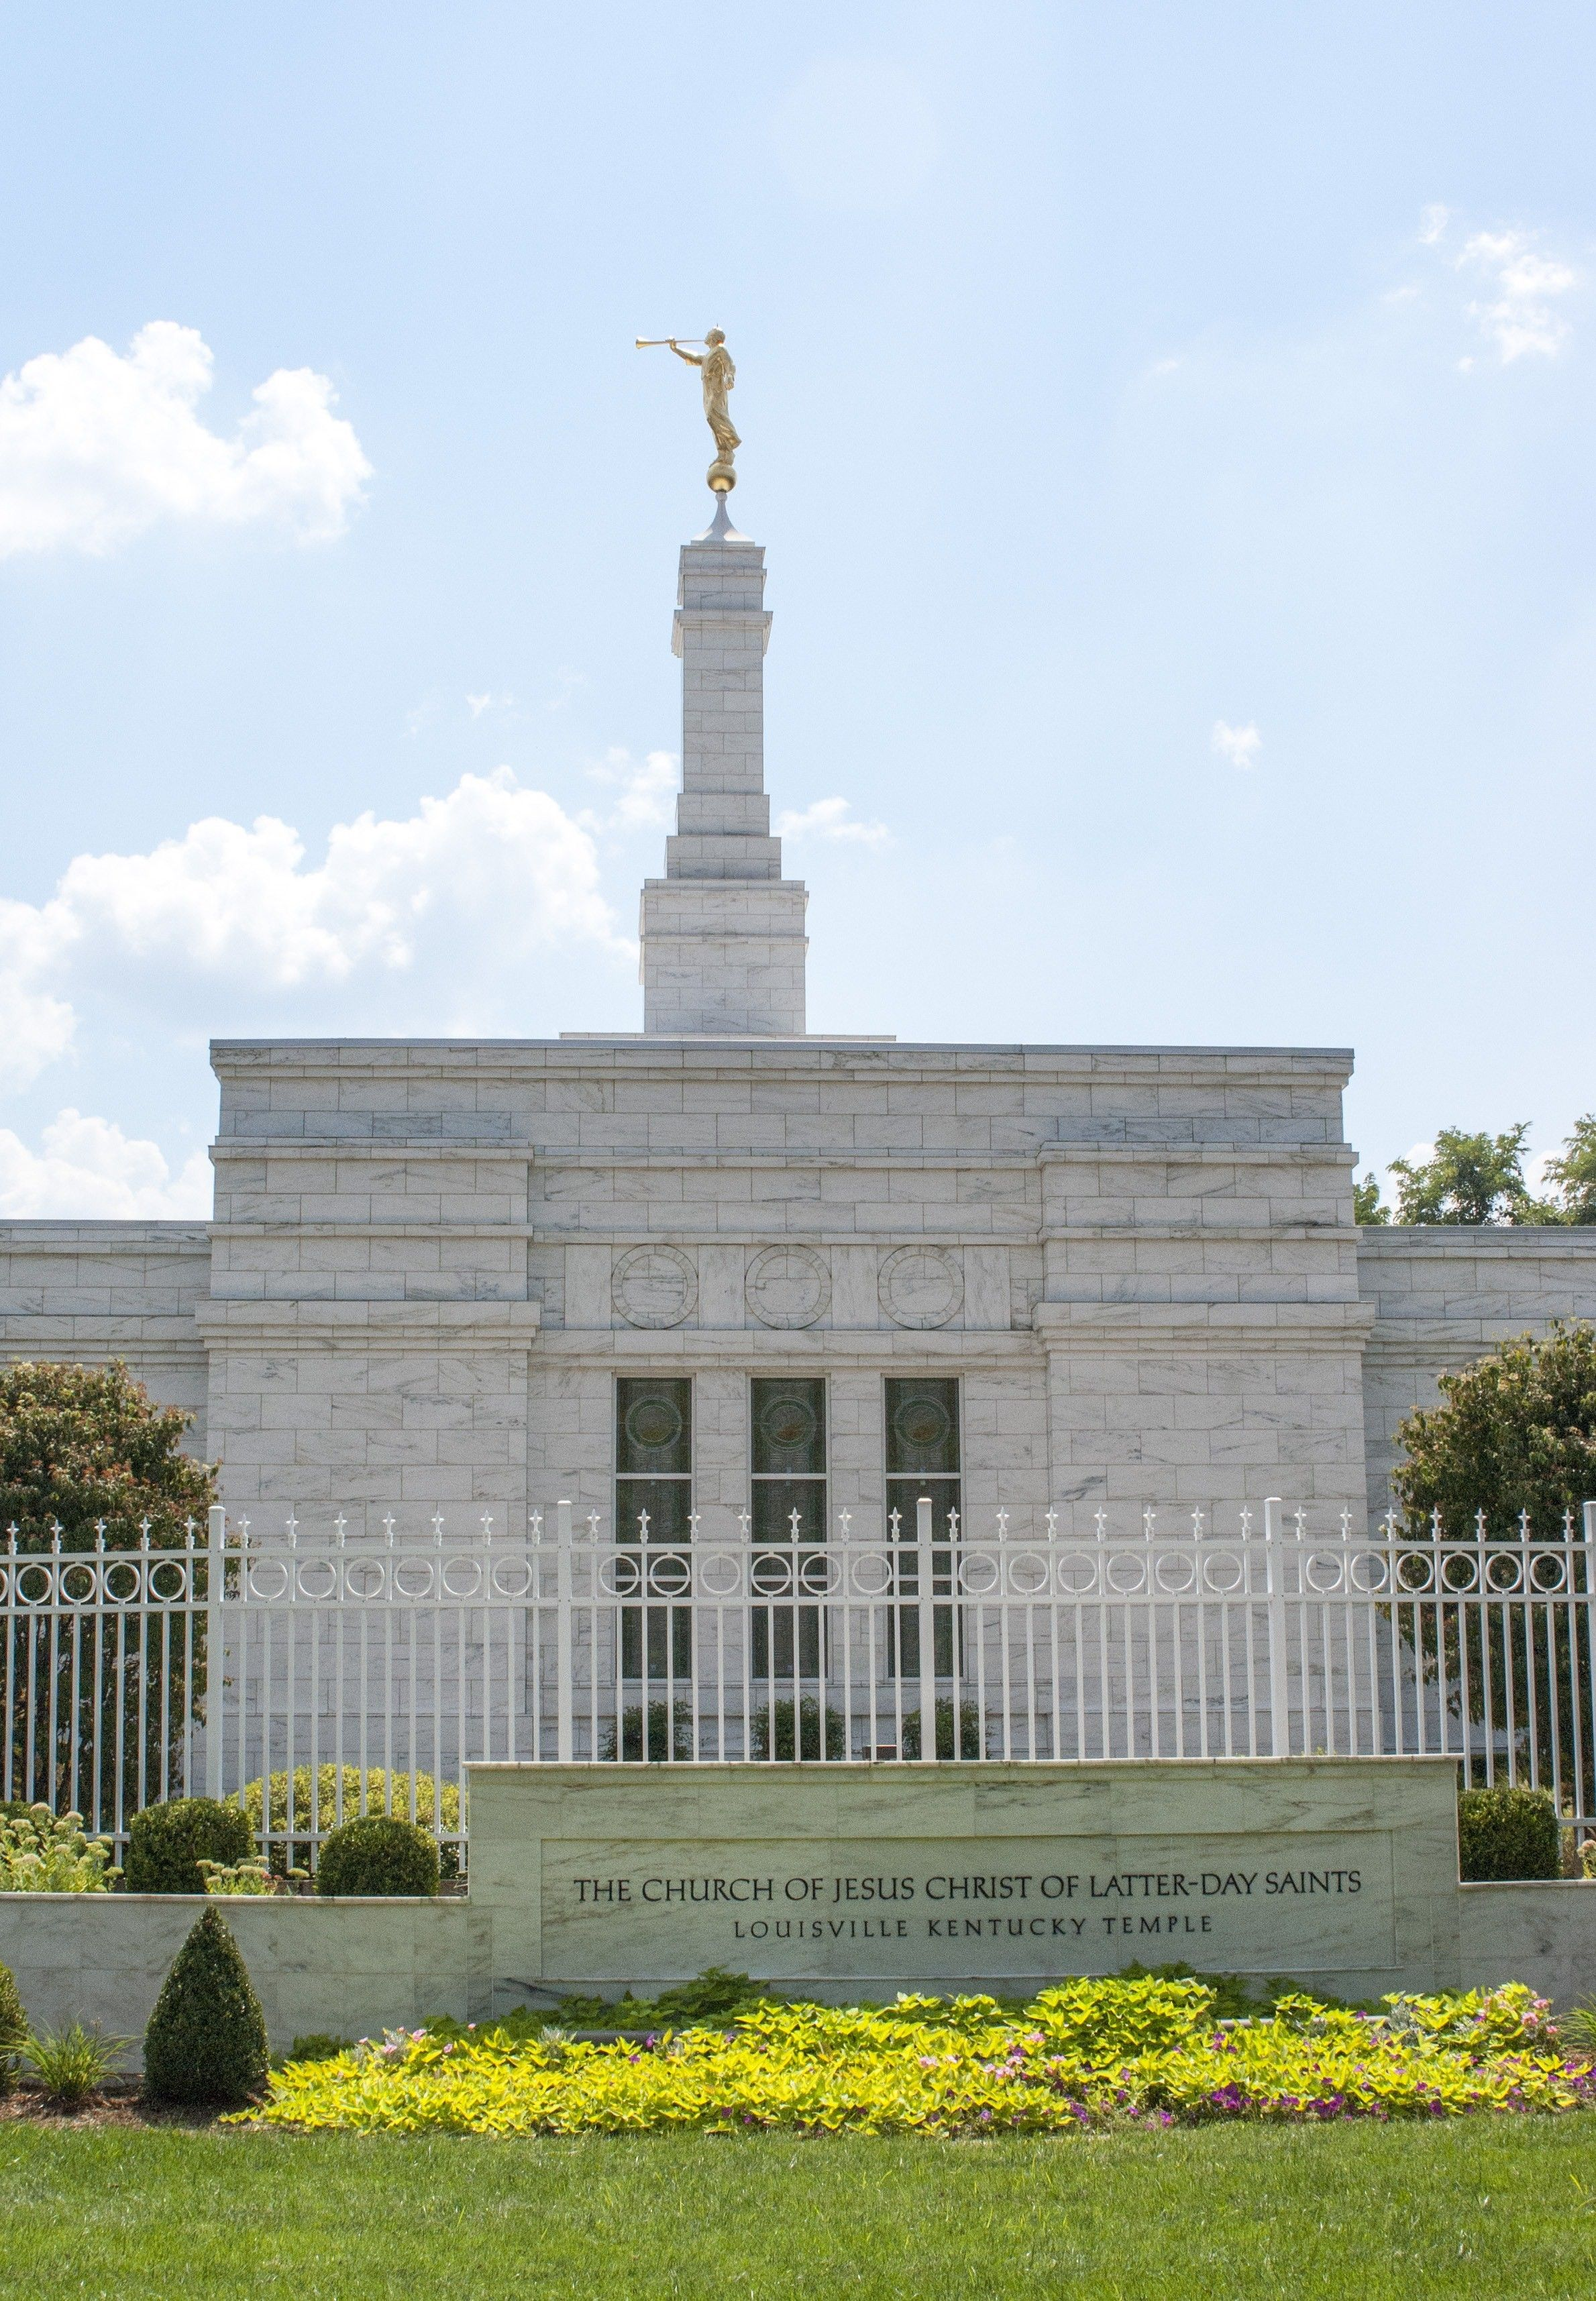 The Louisville Kentucky Temple name sign, including the exterior of the temple.